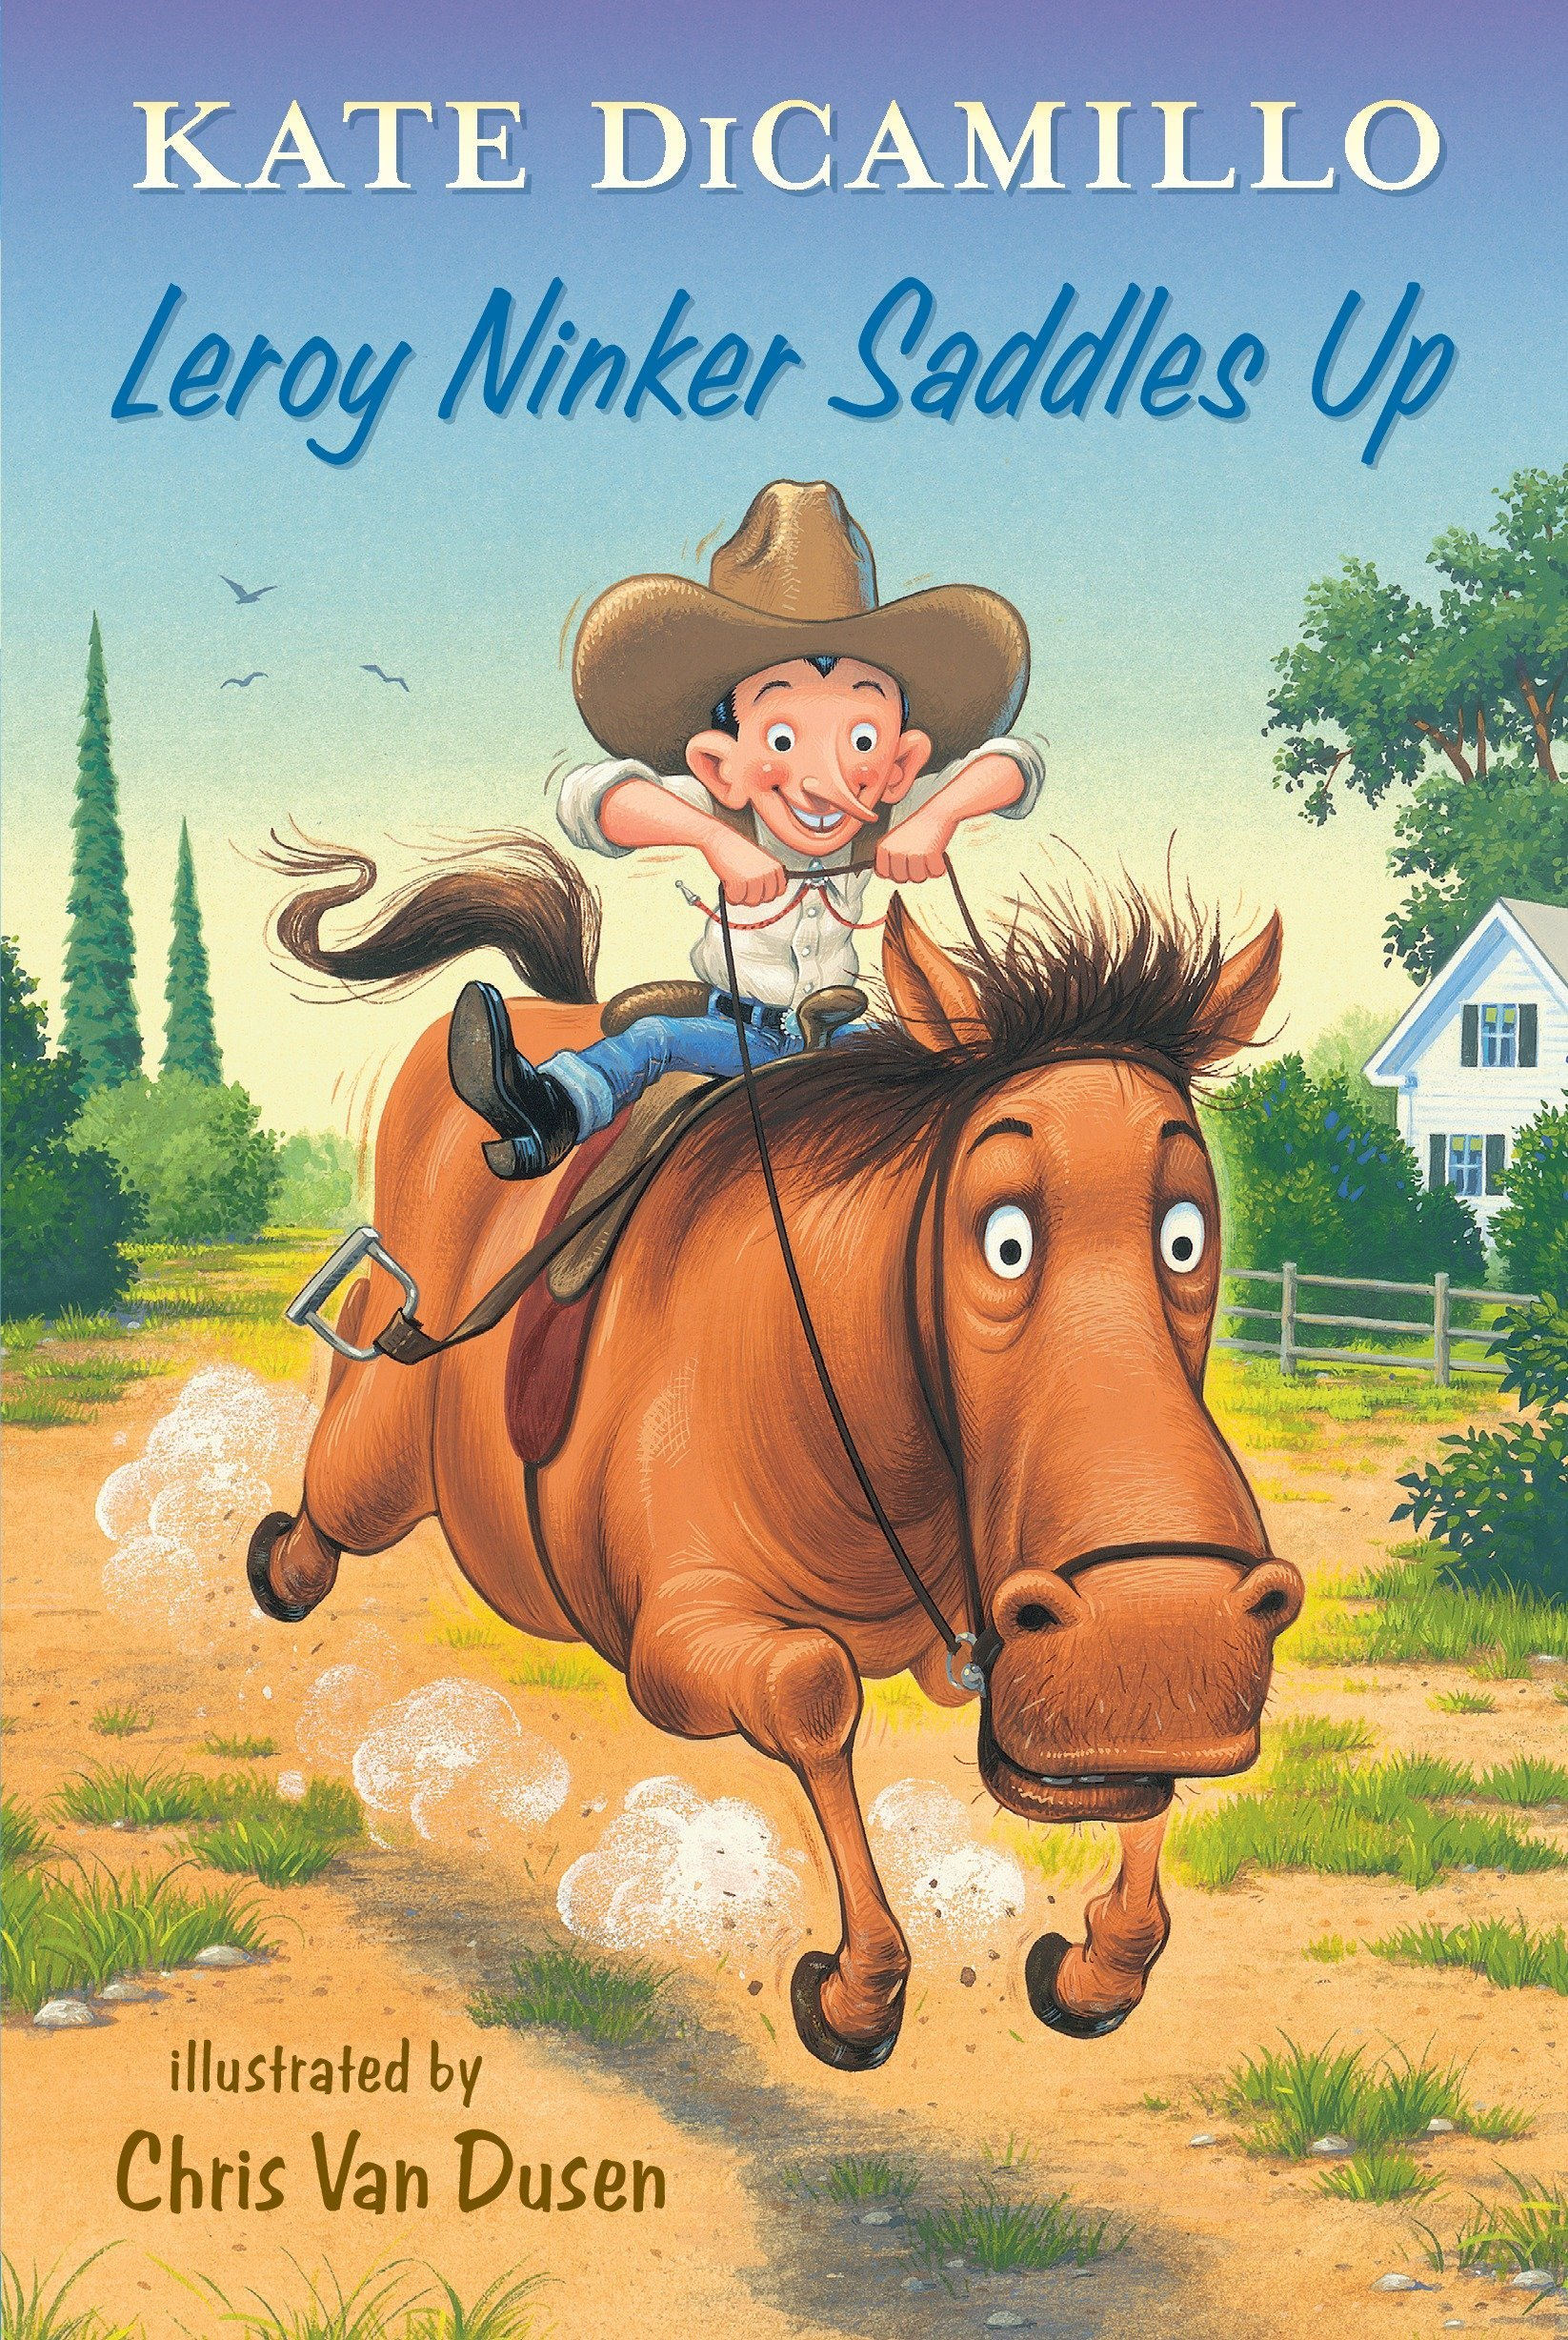 Leroy Ninker Saddles Up: Tales from Deckawoo Drive, Volume One by DiCamillo, Kate/ Van Dusen, Chris (ILT) (Image #1)